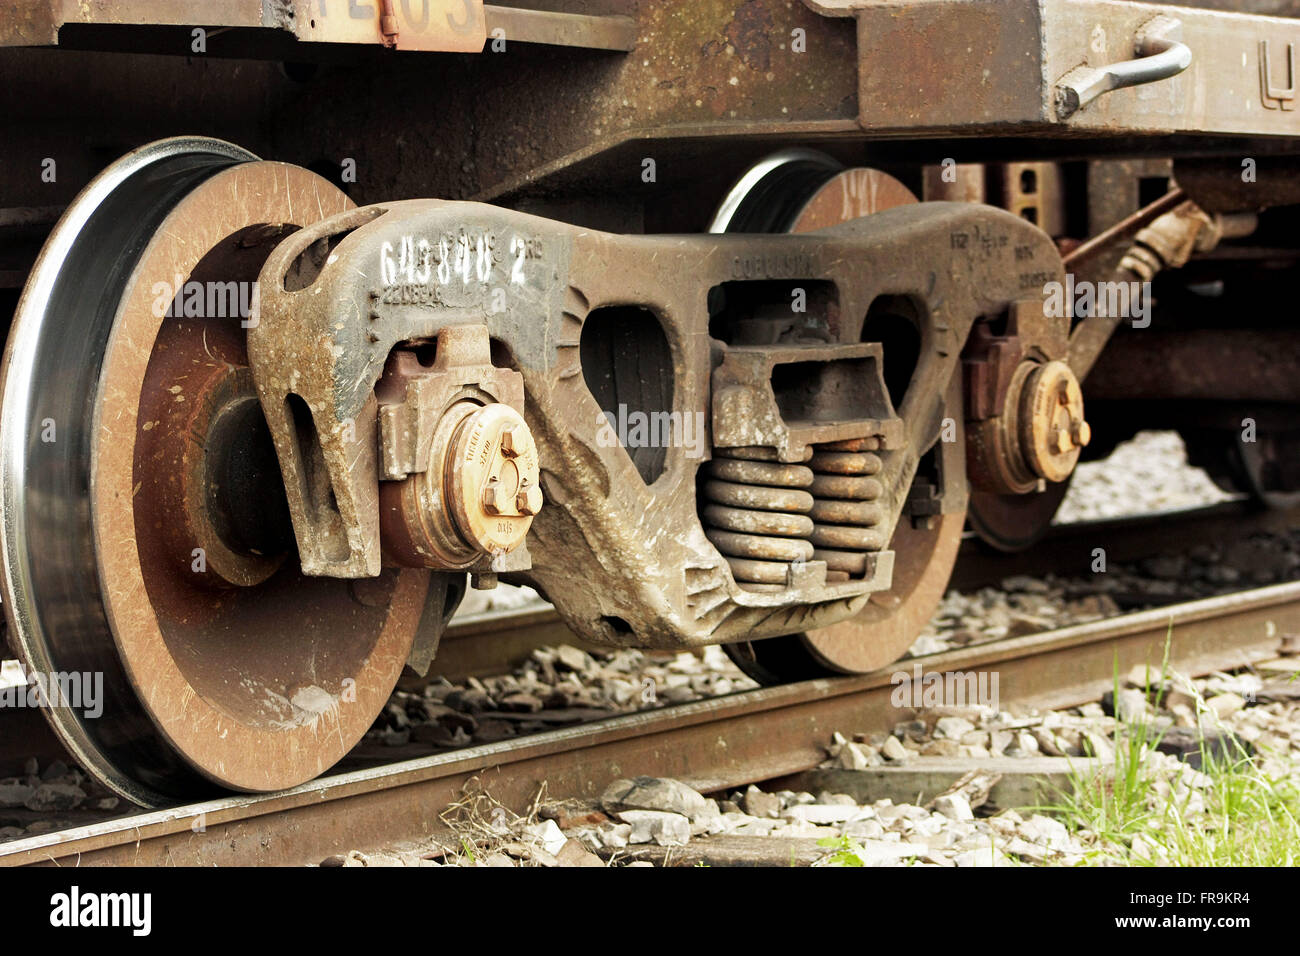 Detail of train wheels on rails - Stock Image